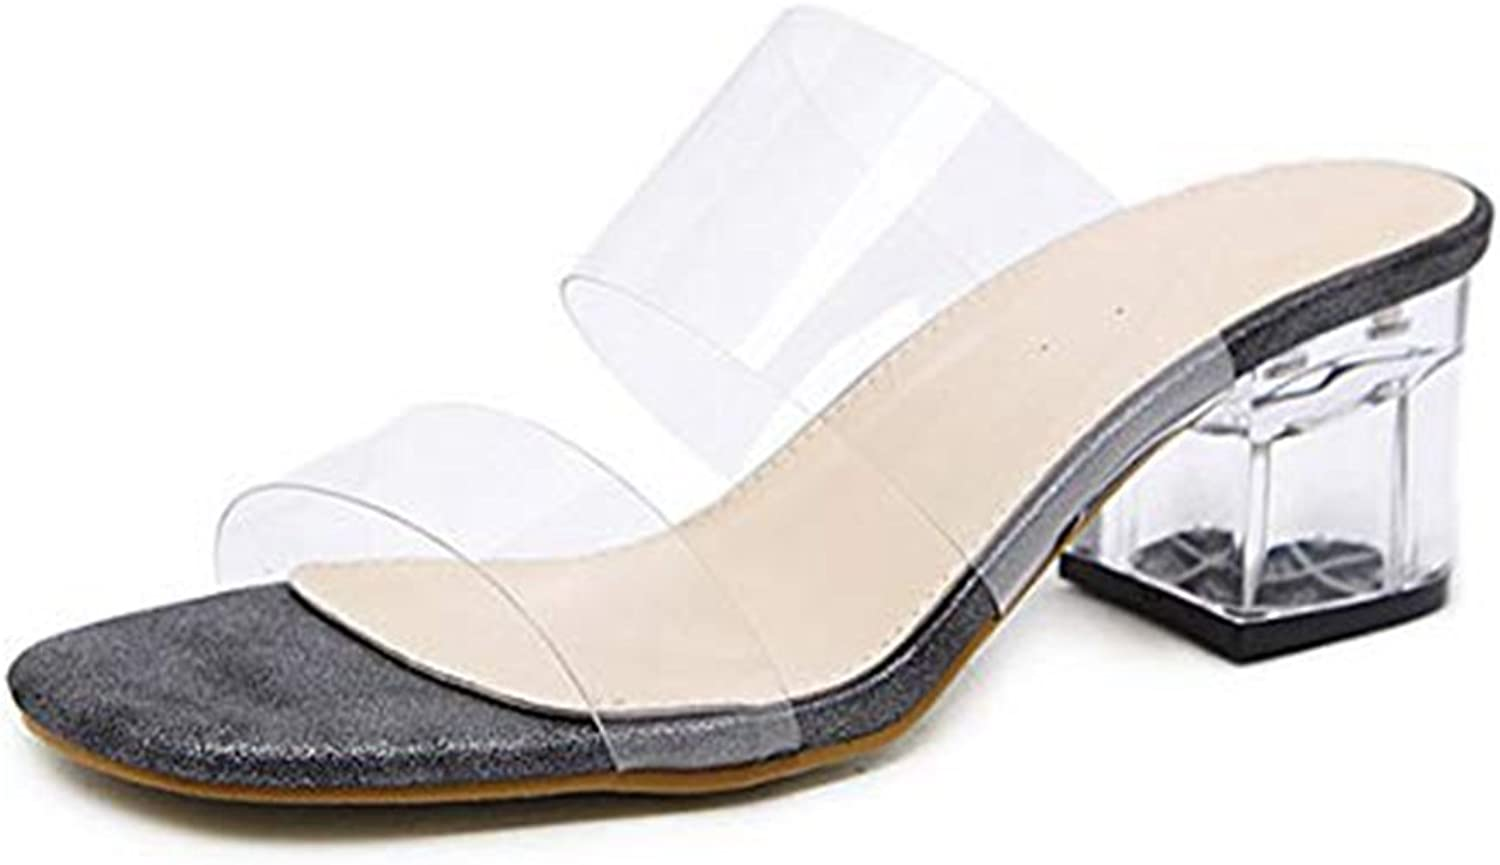 T-JULY Women's Transparent Crystal Middle Block Heel Hollow Out Slide Sandals Slip on Comfy Dress Open Toe Slippers